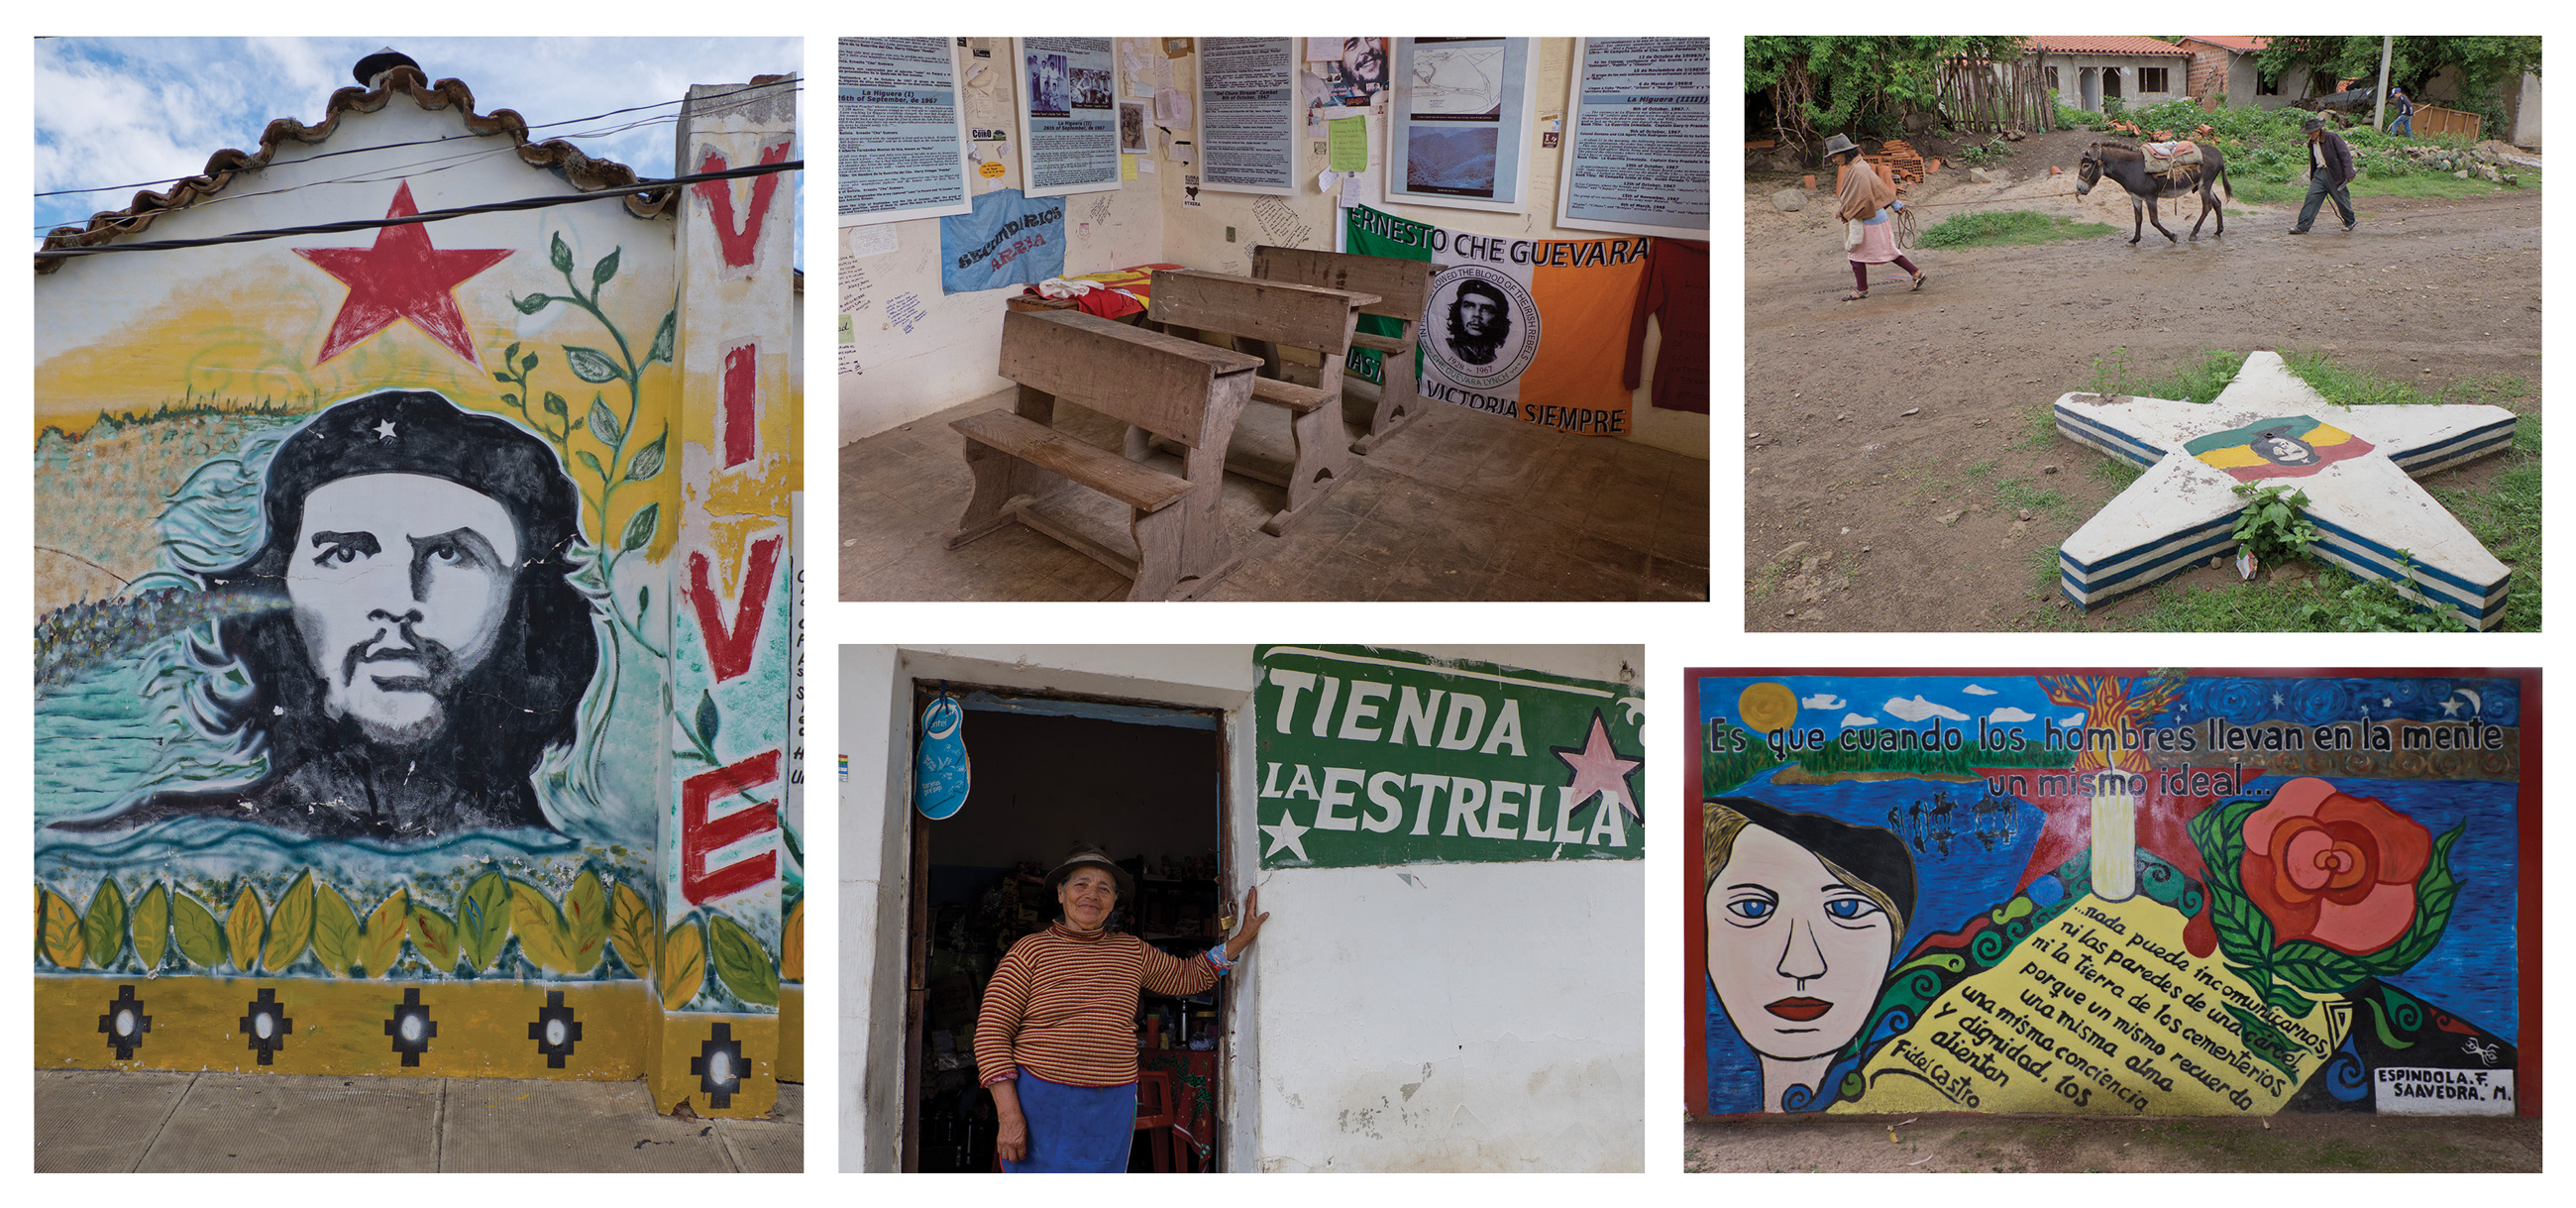 From top left: Mural dedicated to Che Guevara in Vallegrande, where his body was taken and displayed to the international press. This is now part of the Che Route, sponsored by the Bolivian government and foreign solidarity groups; The school in La Higuera where Che was killed after being taken prisoner 50 years ago; The 20 or so families living in La Higuera survive on subsistence farming and Che tourism; Julia Cortez, who worked as a schoolteacher in La Higuera in 1967 and fed Che, now runs a grocery shop and restaurant in the village; Mural by the grave of fellow guerilla Tania, who was captured and executed, in Vallegrande.